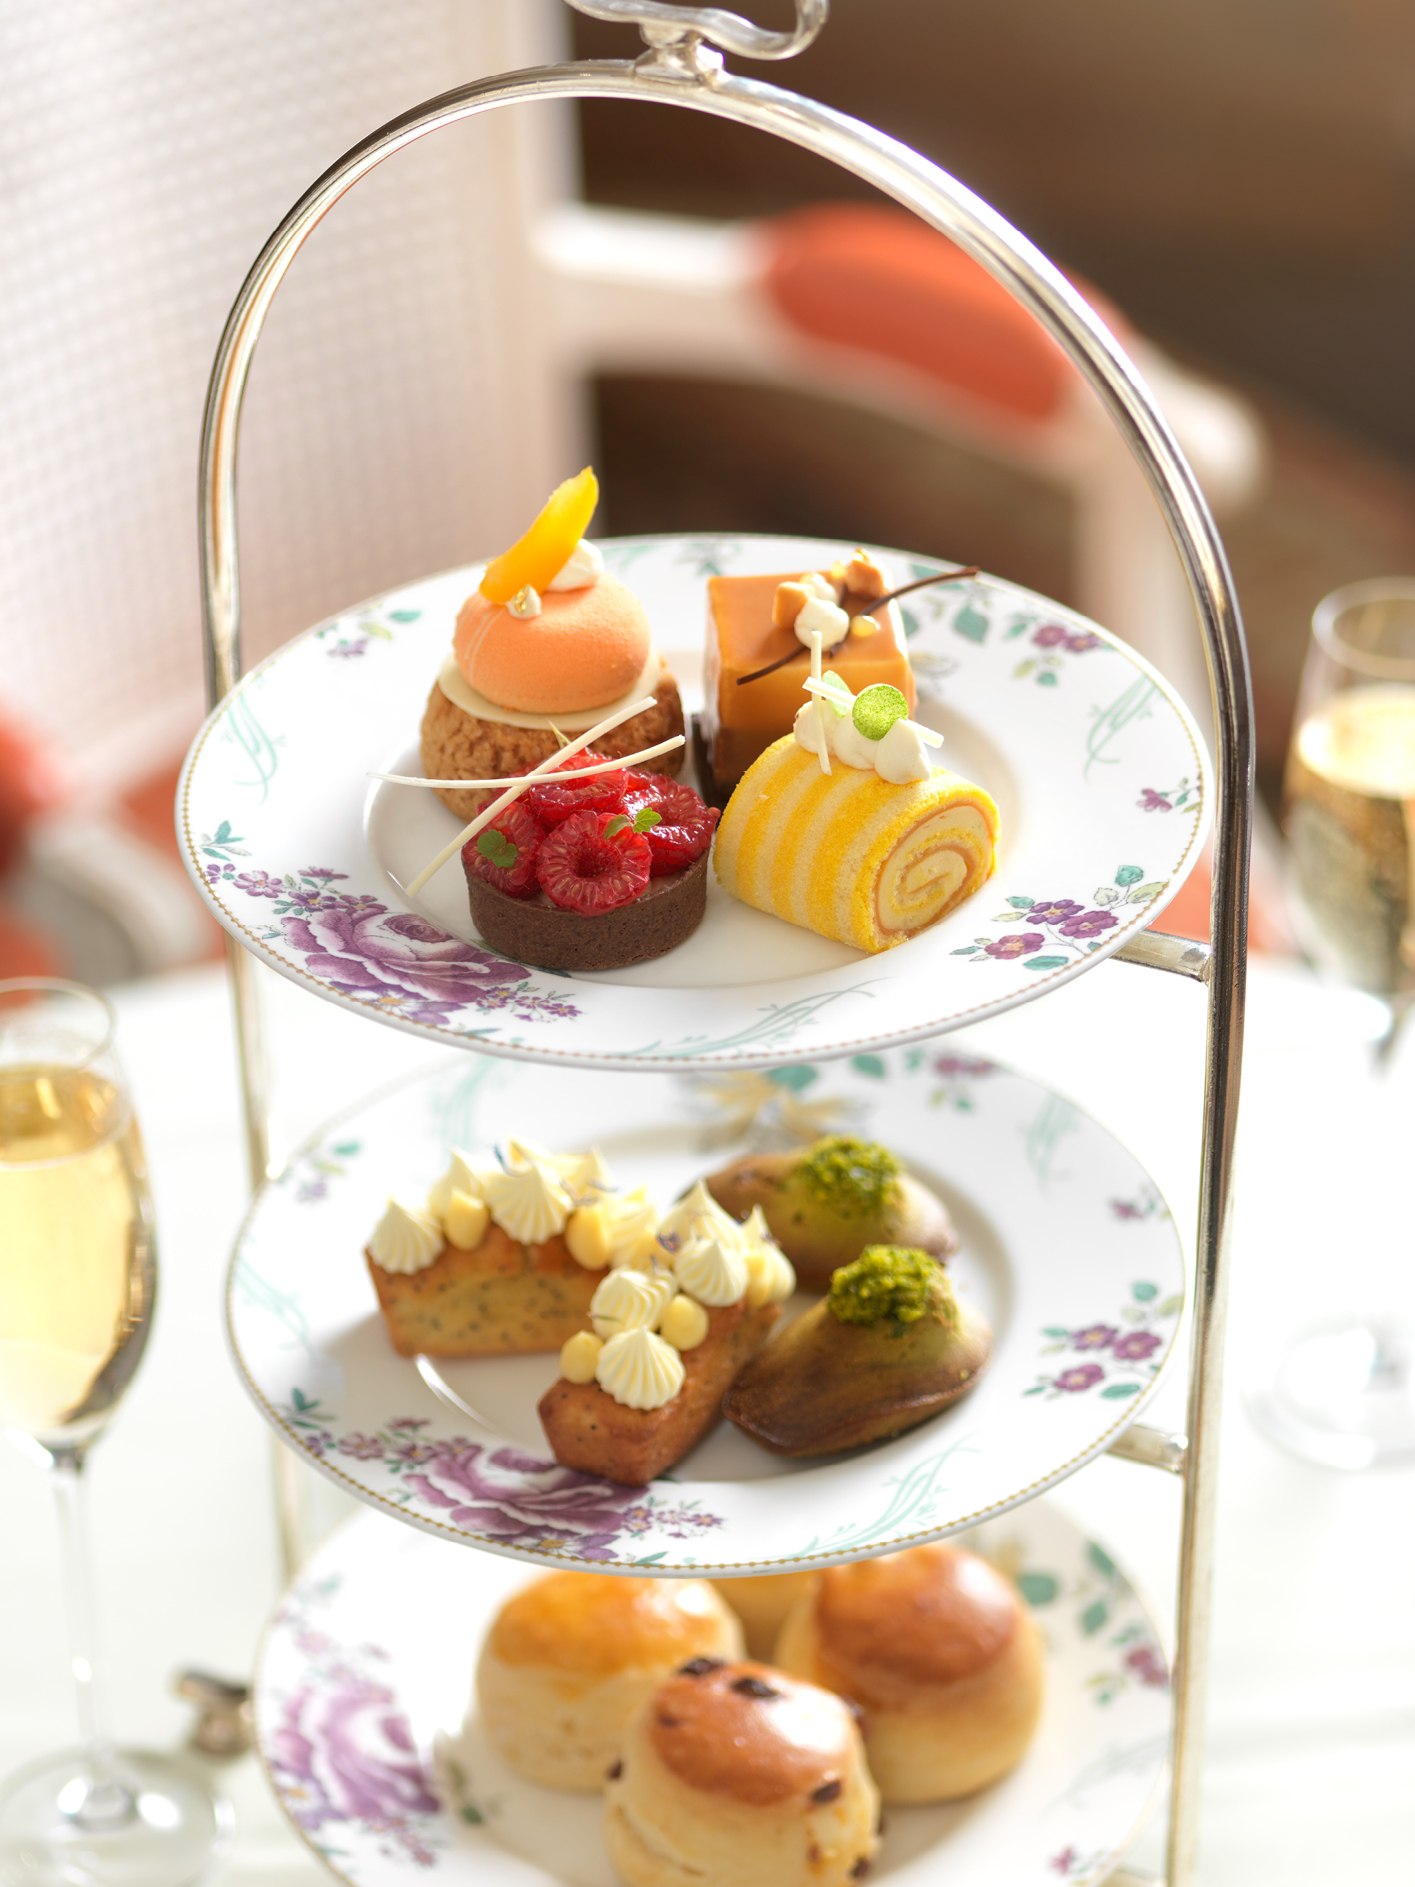 The Savoy's afternoon tea lives up to high expectations